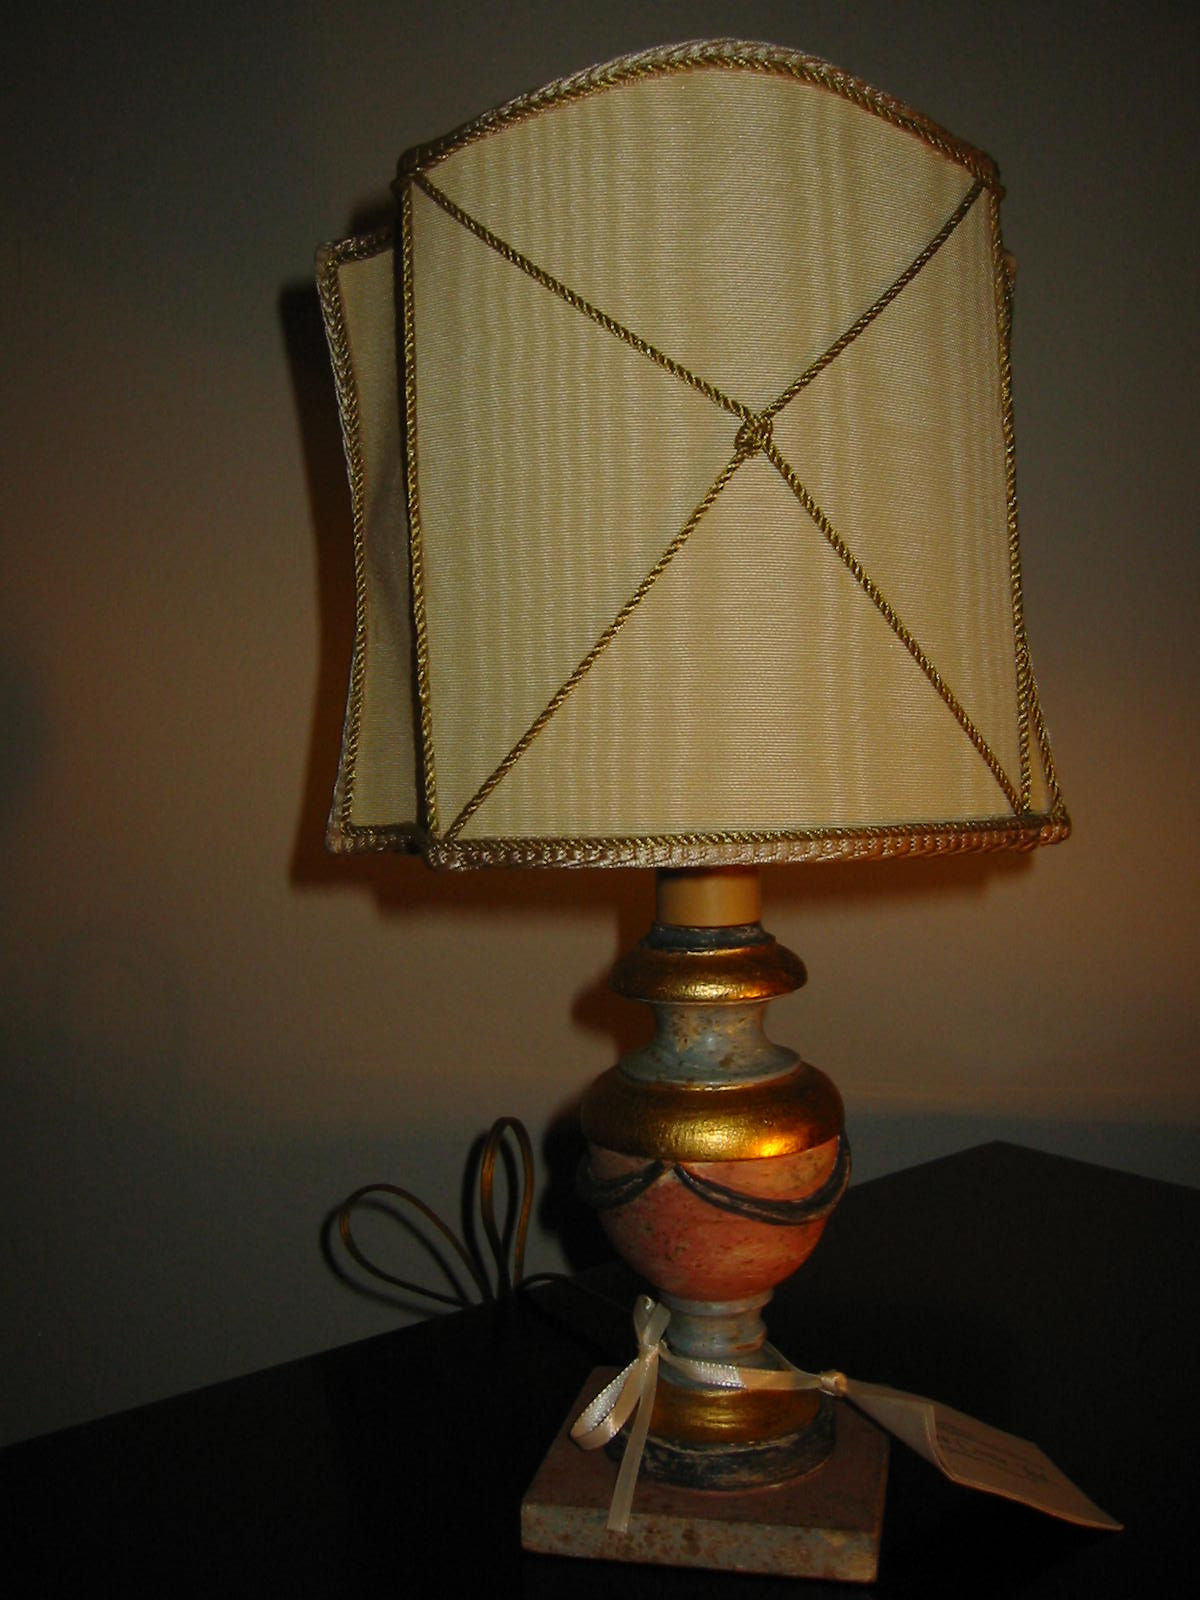 venetian wood budoir lamps for sale classifieds. Black Bedroom Furniture Sets. Home Design Ideas